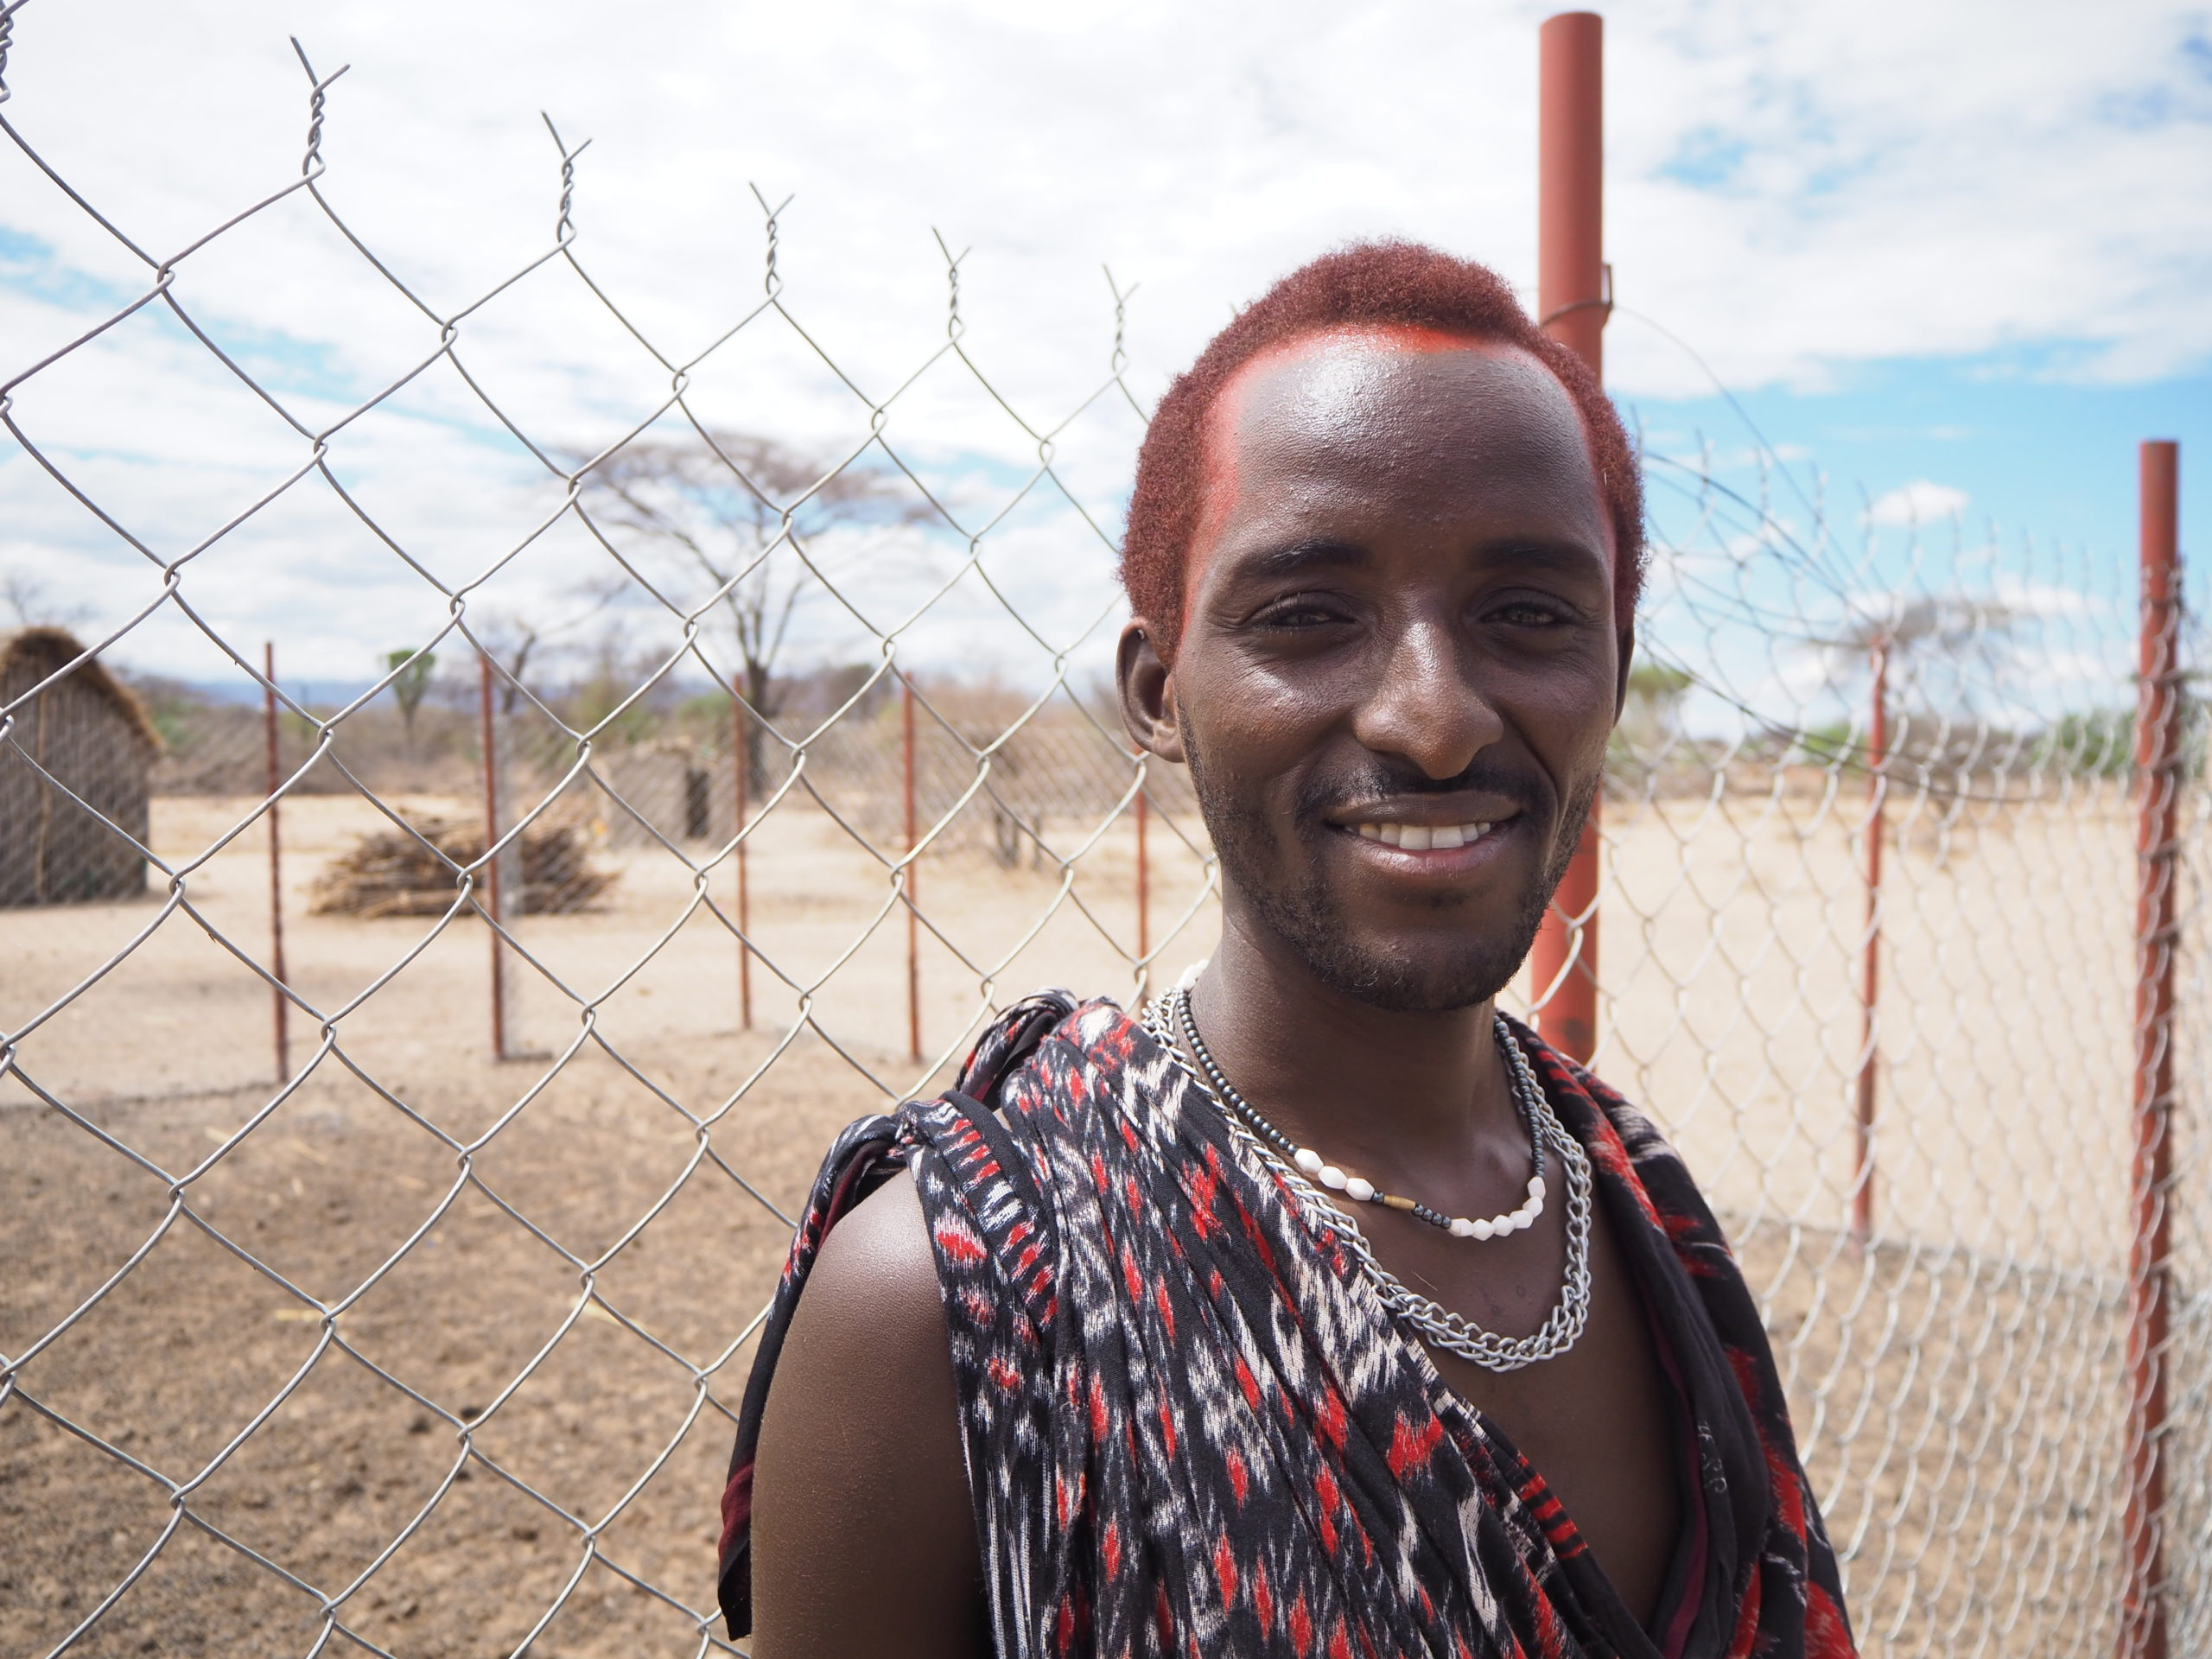 Musse standing by chain-link fence